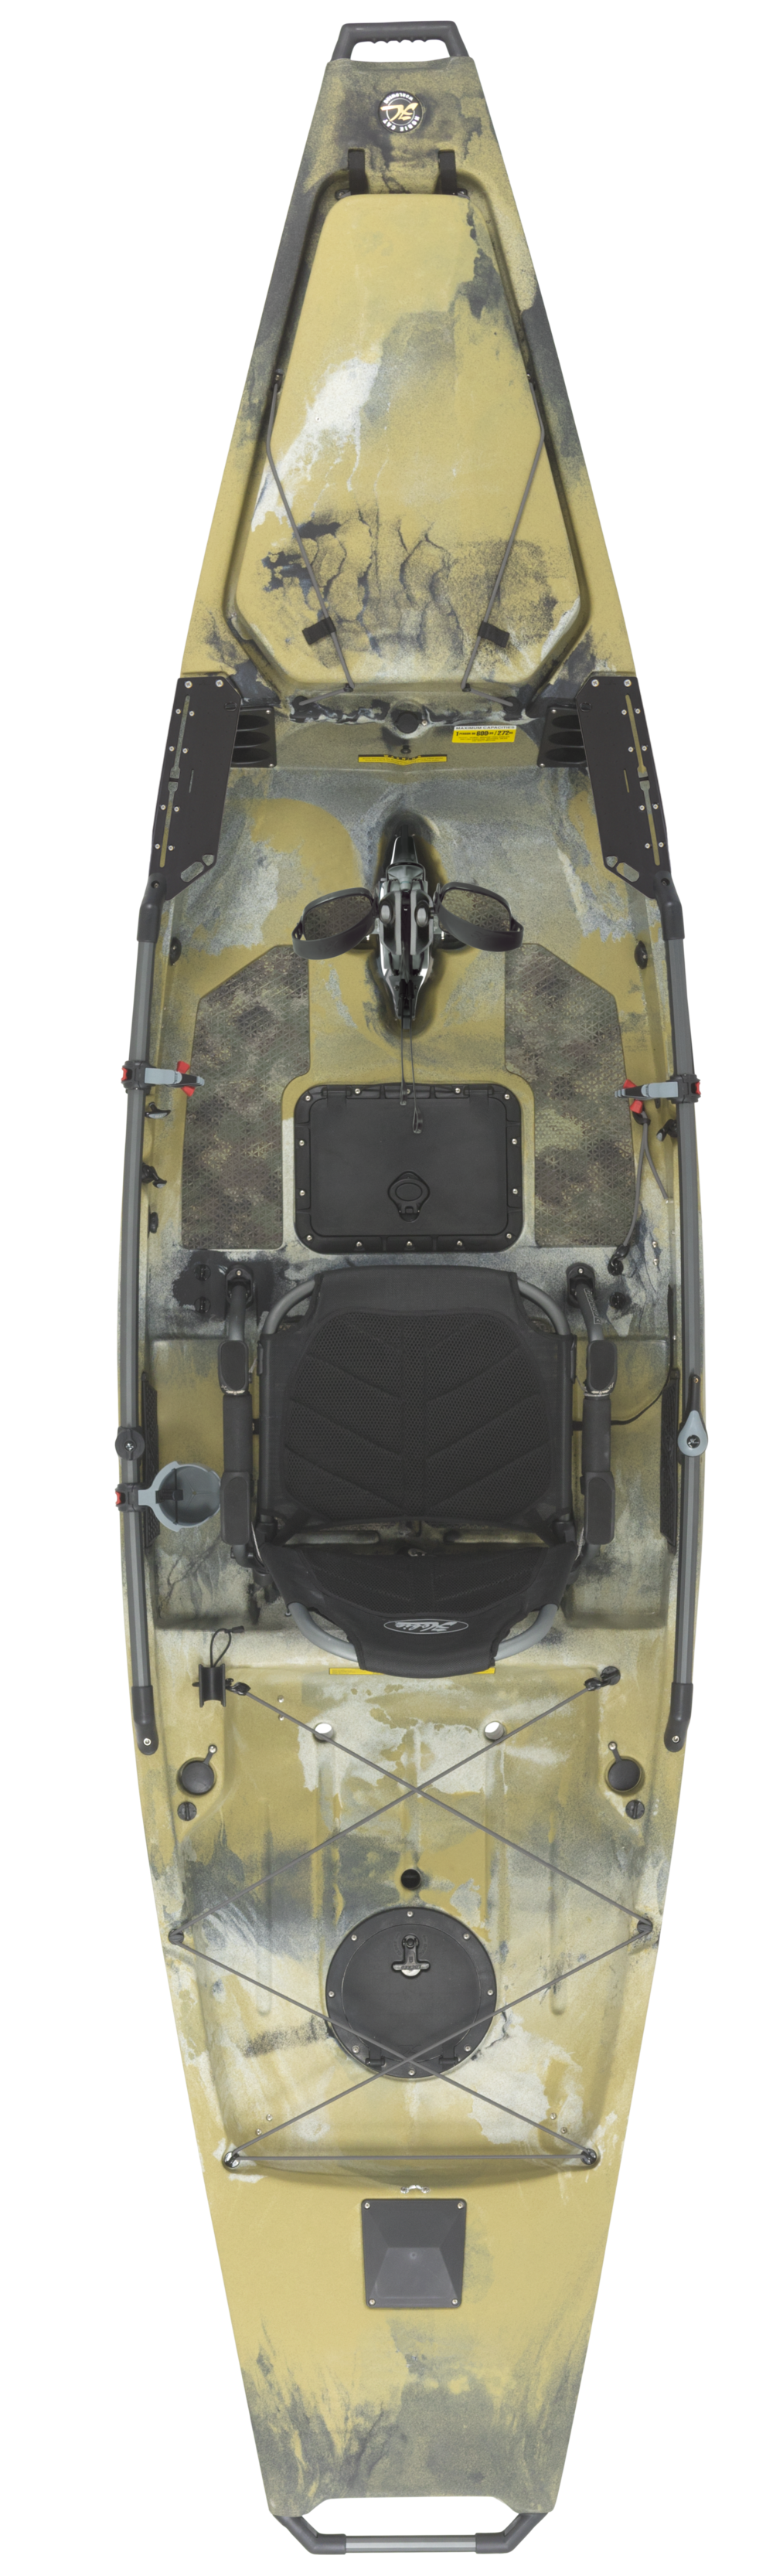 ProAngler14-studio_topview_camo_2018_full_AUG3_OE51xvU.png